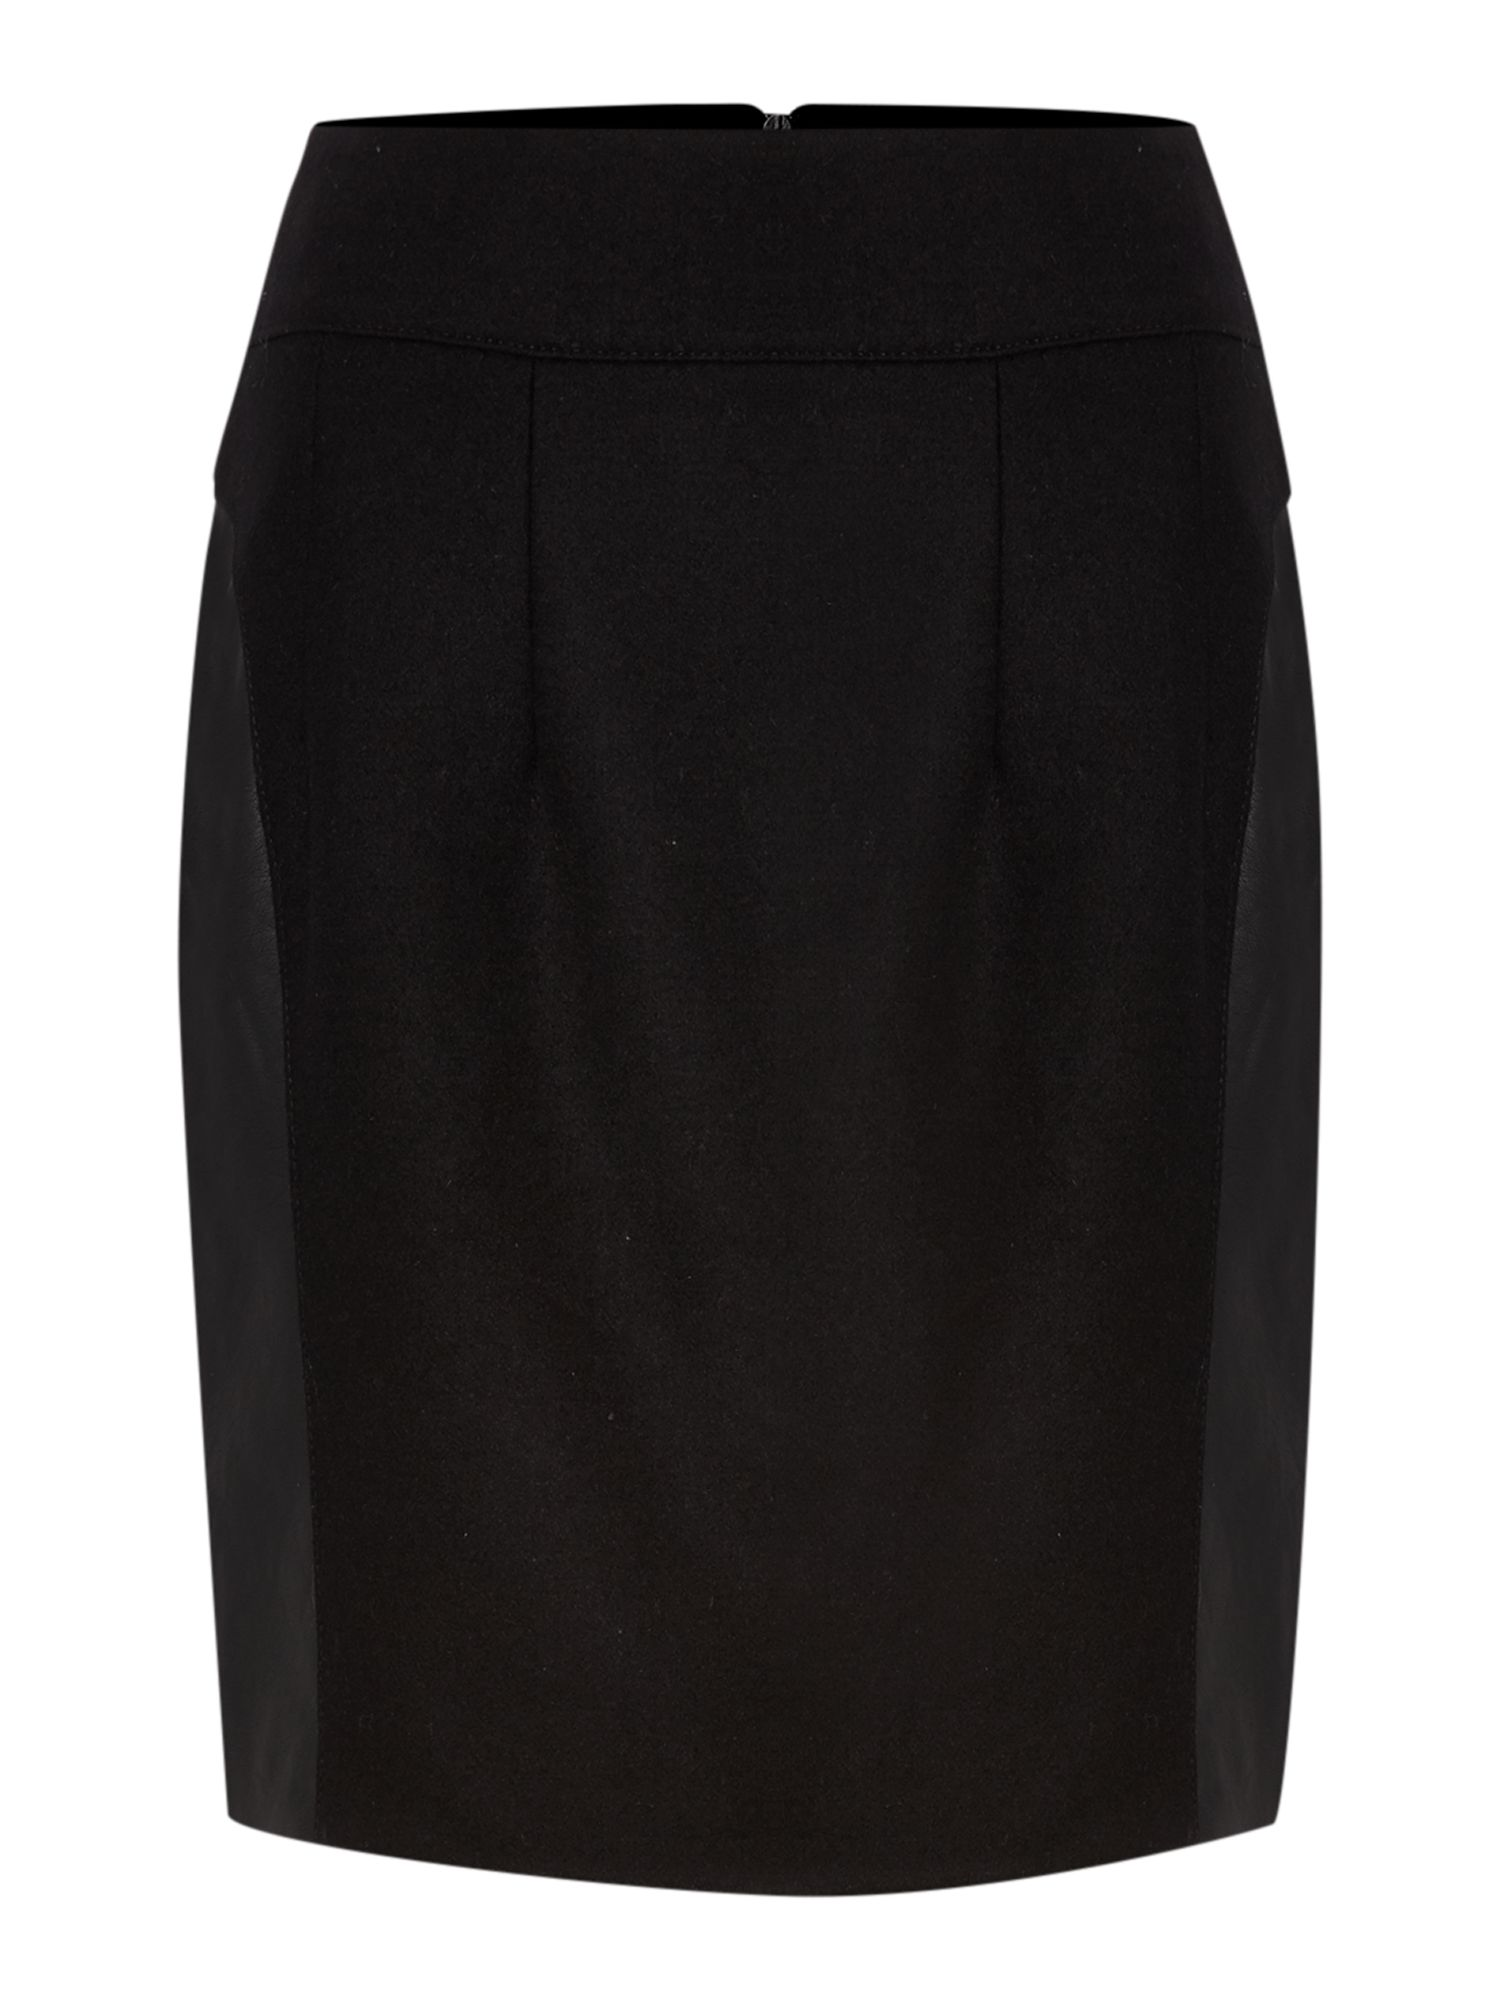 Pu wool panel skirt